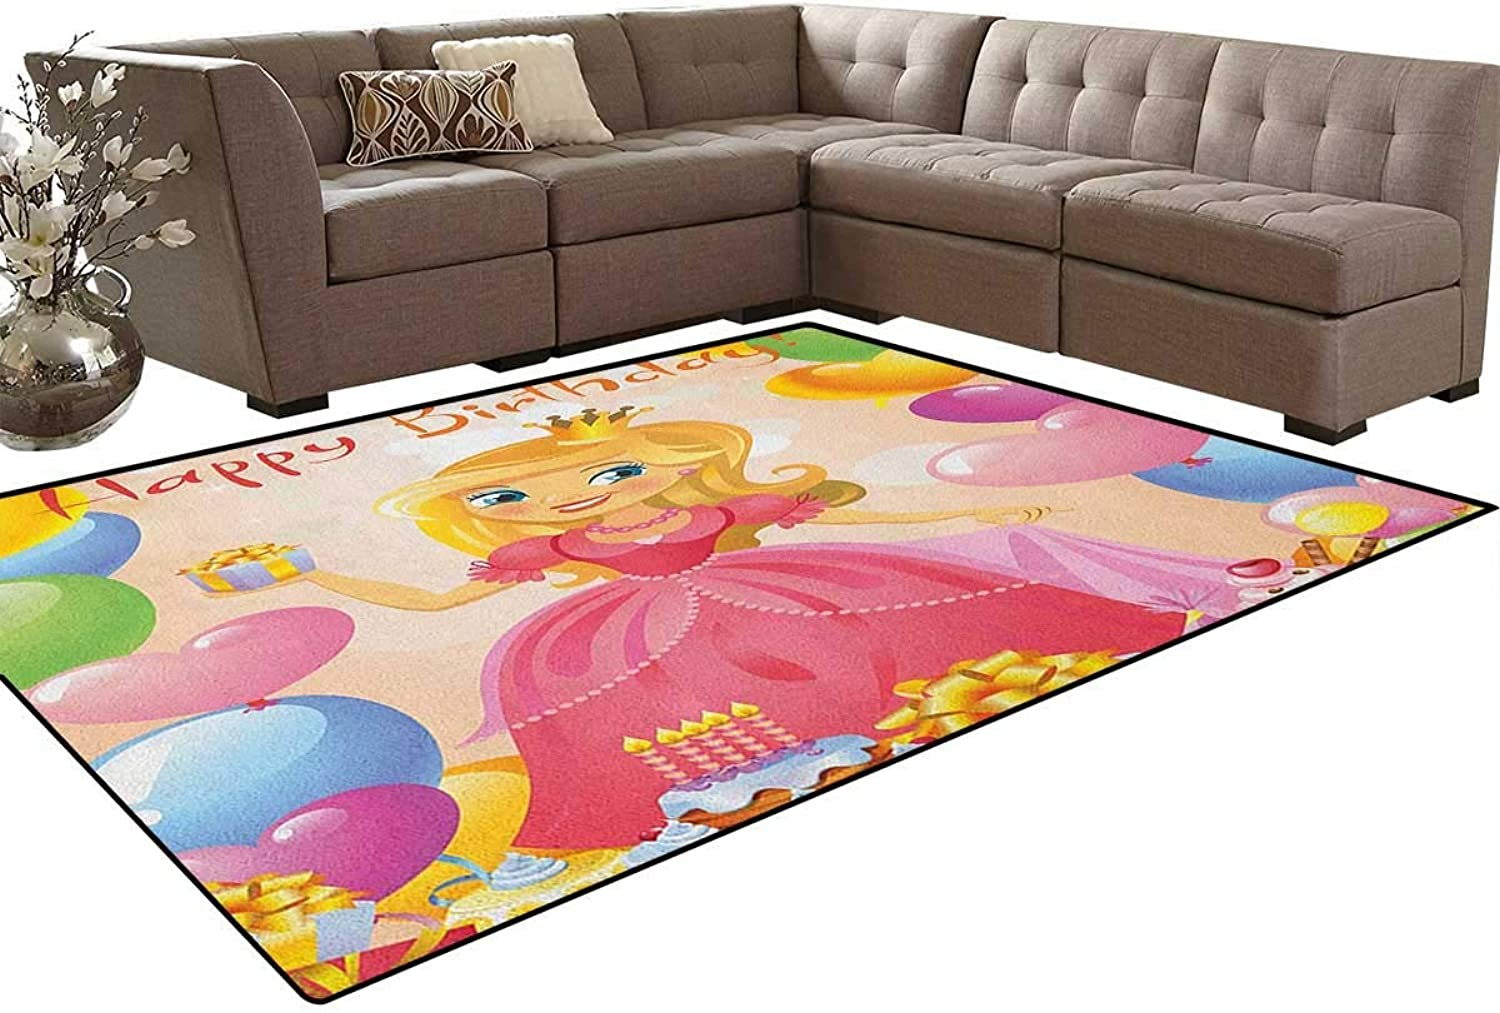 Birthday Girl Cute Sweet Princess Themed Image with Hearts and Balloons Image Floor Mat Rug Indoor Front Door Kitchen and Living Room Bedroom Mats Rubber Non Slip